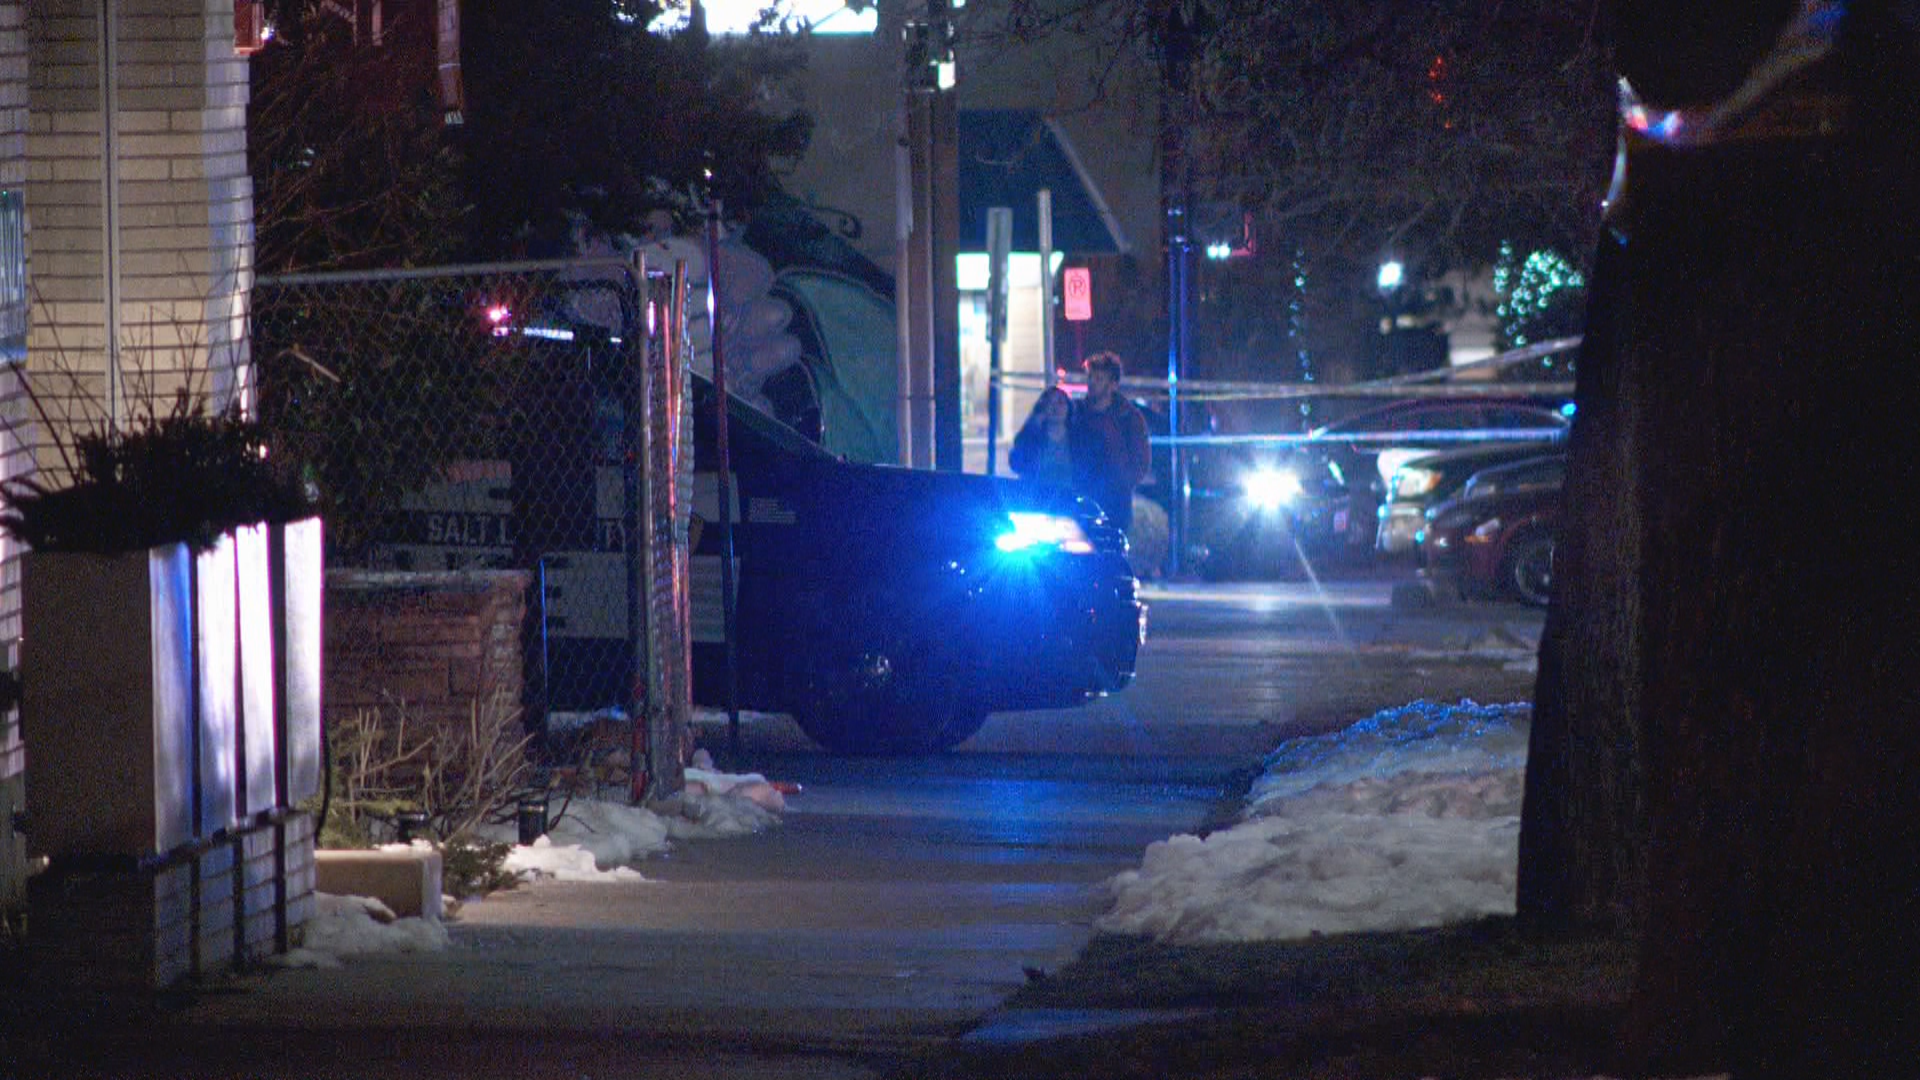 A police K9 was shot and killed while a task force was apprehending a parole fugitive, who was also killed, in Salt Lake City just before midnight on Thursday, Feb. 13, 2020. (Photo: KUTV)